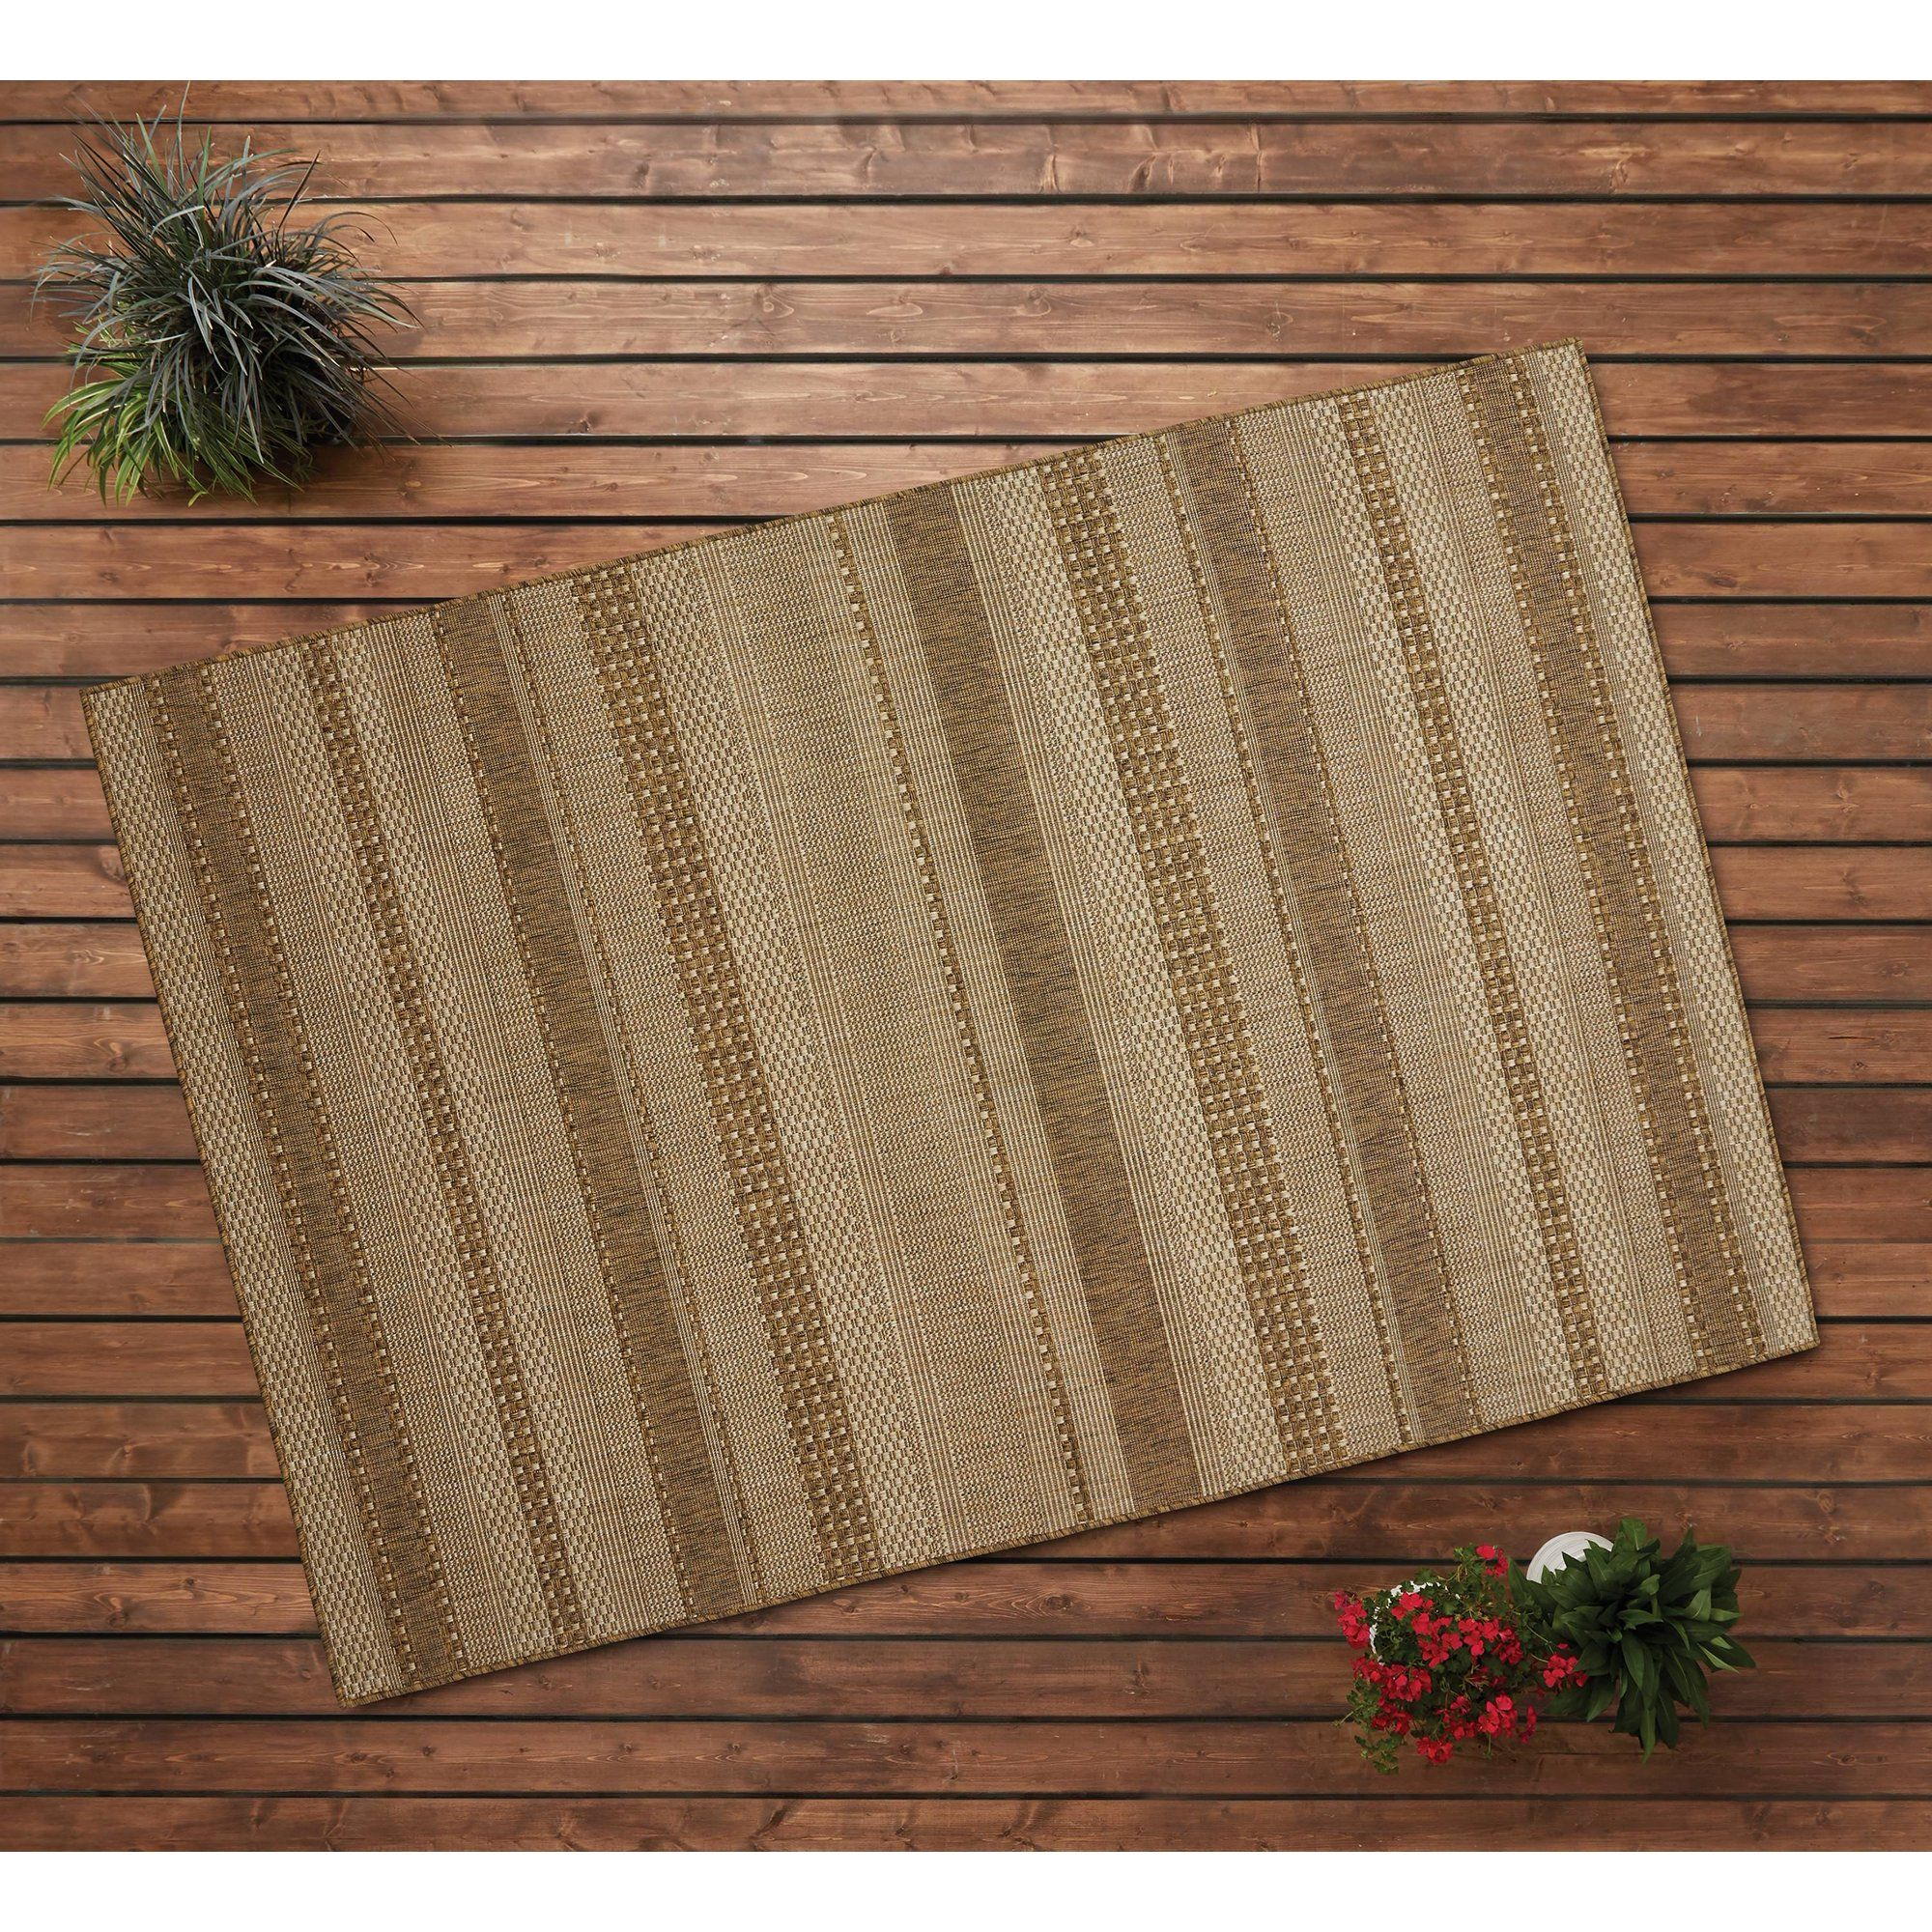 Better Homes Gardens 5 X 7 Natural Stripe Indoor Outdoor Area Rug Walmart Com Walmart Com Versatile Rug Outdoor Area Rugs Indoor Outdoor Area Rugs